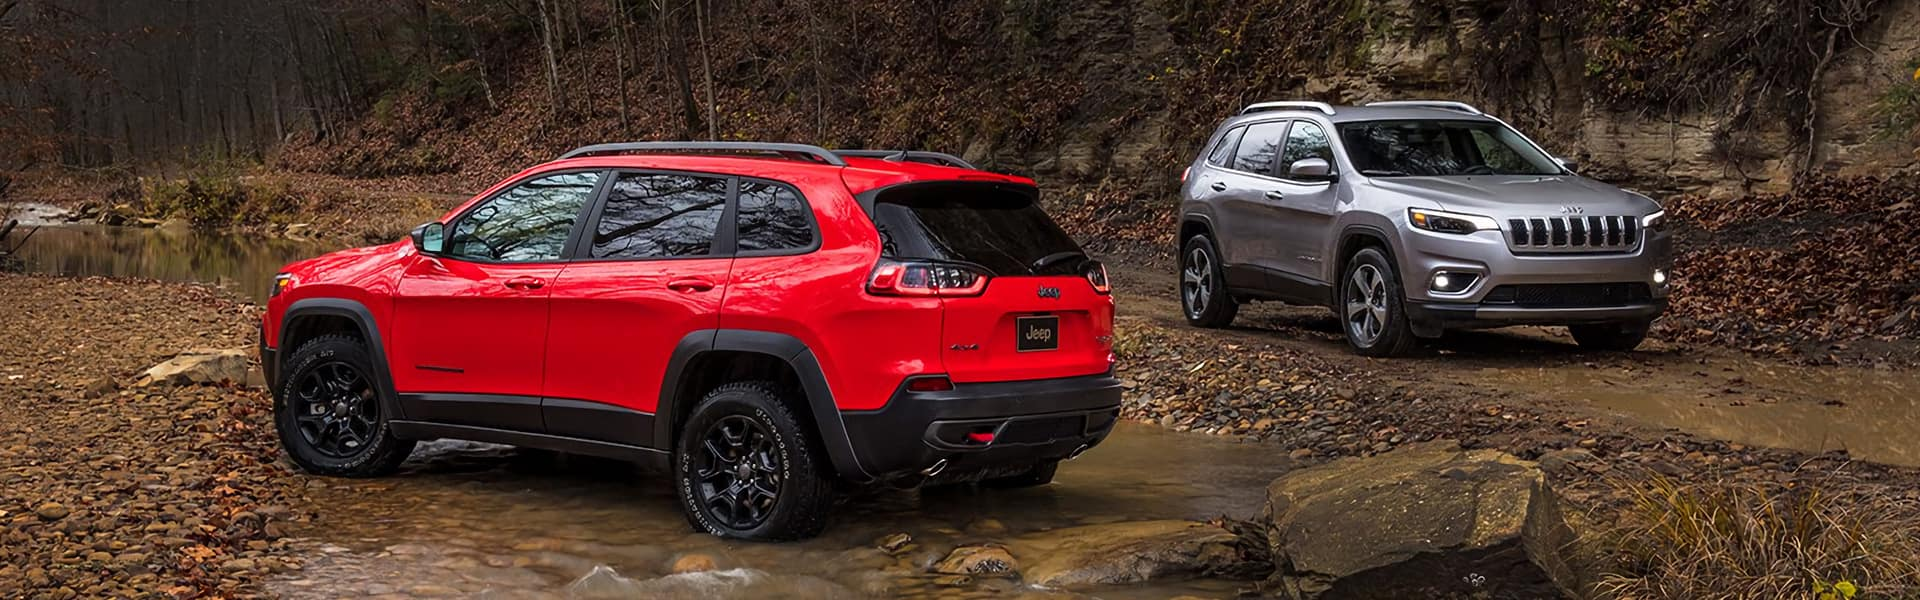 2019 Jeep Cherokee | Jeep Dealer Indianapolis IN ...